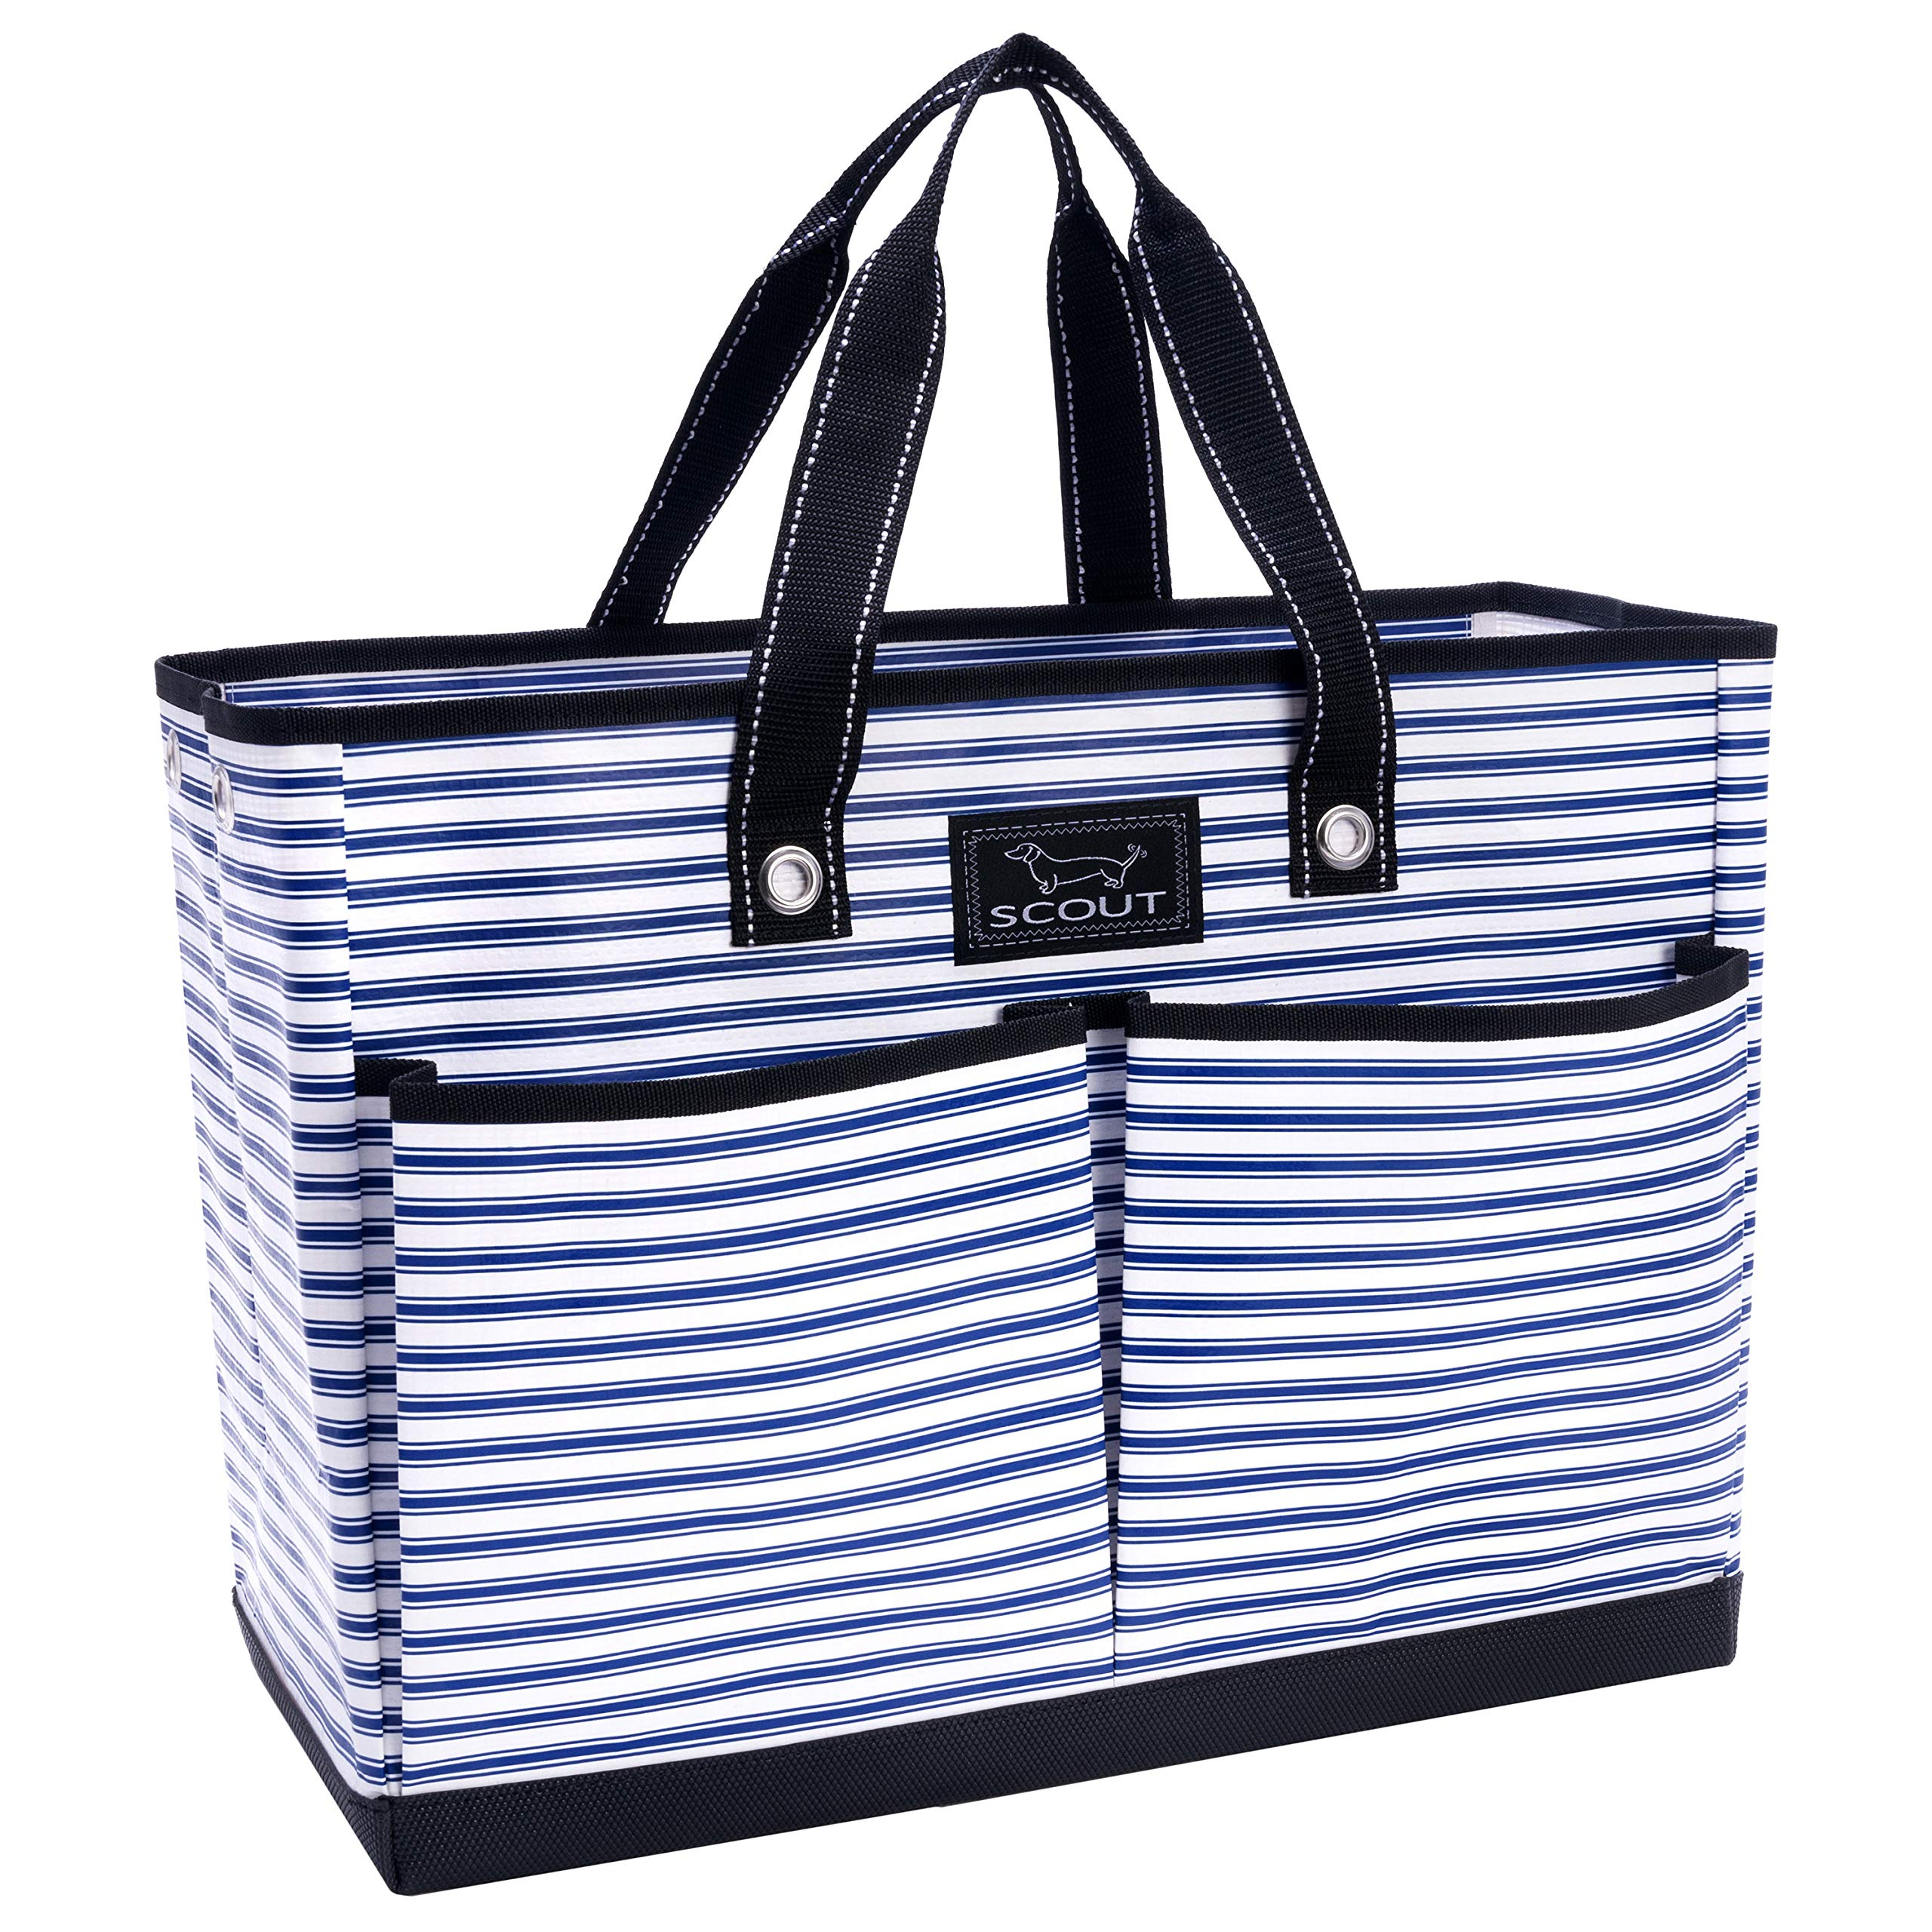 SCOUT BJ Bag, Large Multi Pocket Utility Tote for Beach and Pool, Reinforced Bottom, Water Resistant, Zips Closed, Stripe Right